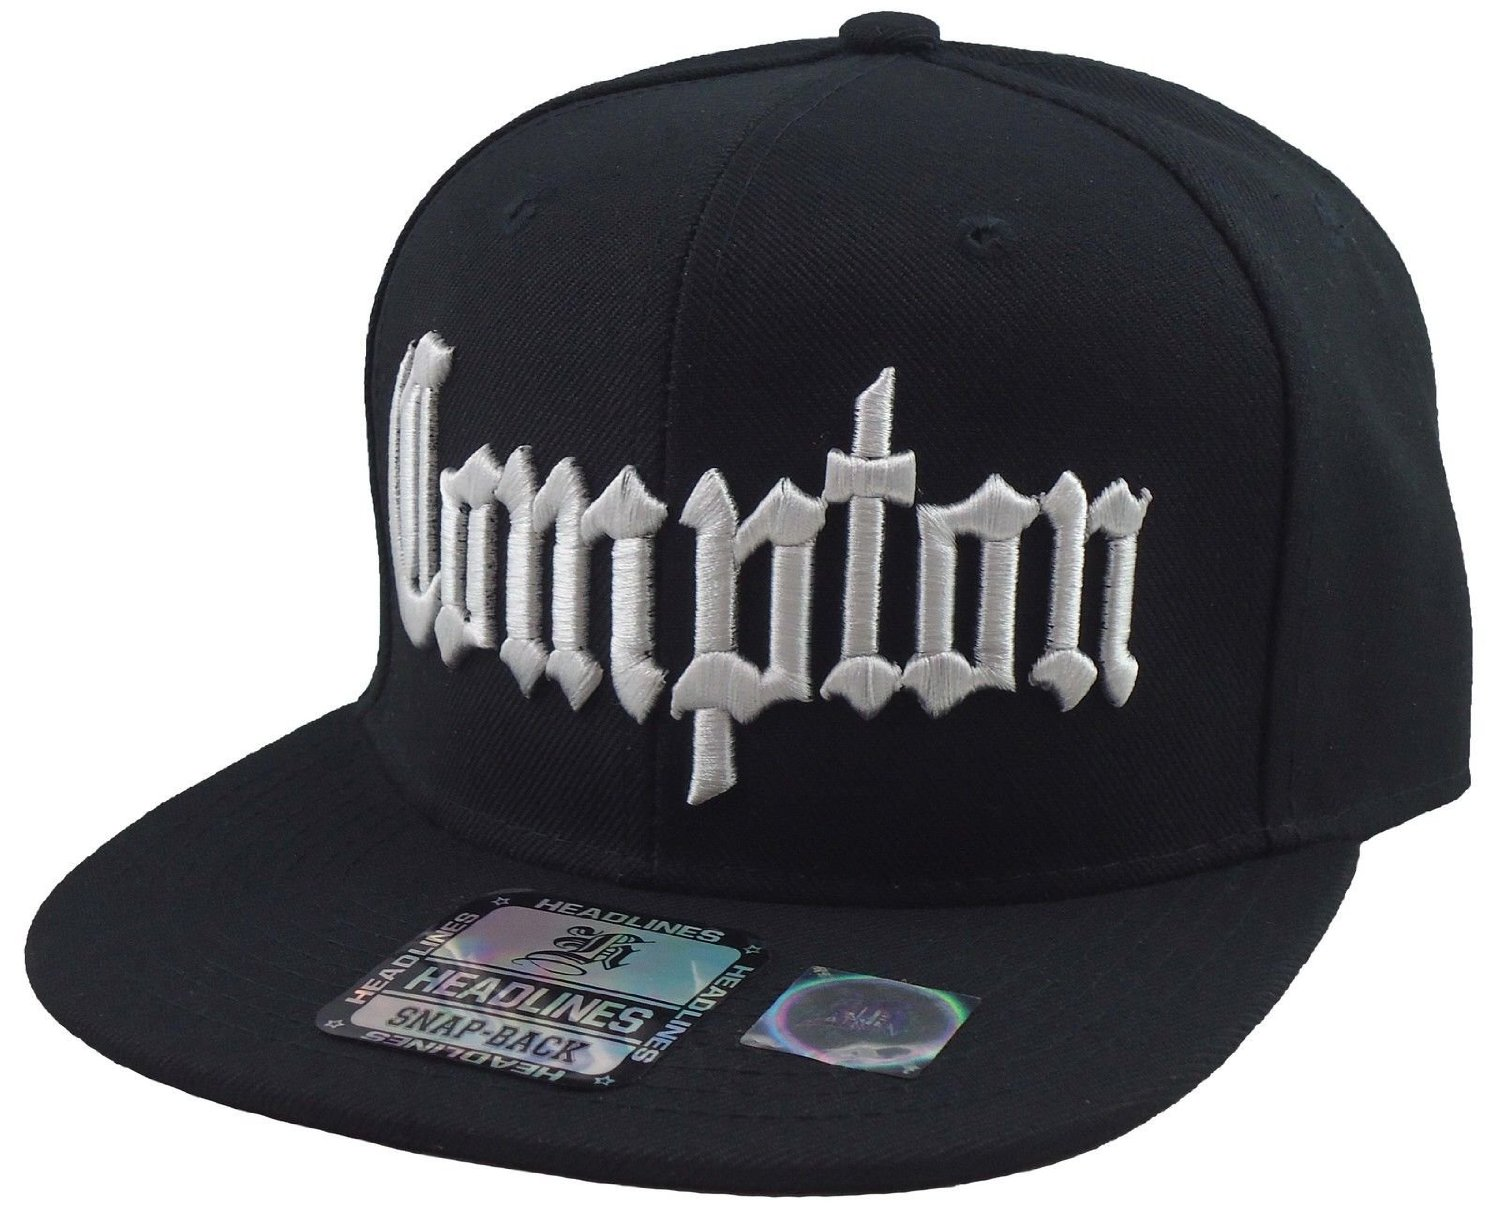 0ded804a040 Buy New Compton 3d Embroidered Flat Bill Snapback Baseball Cap Hat ...